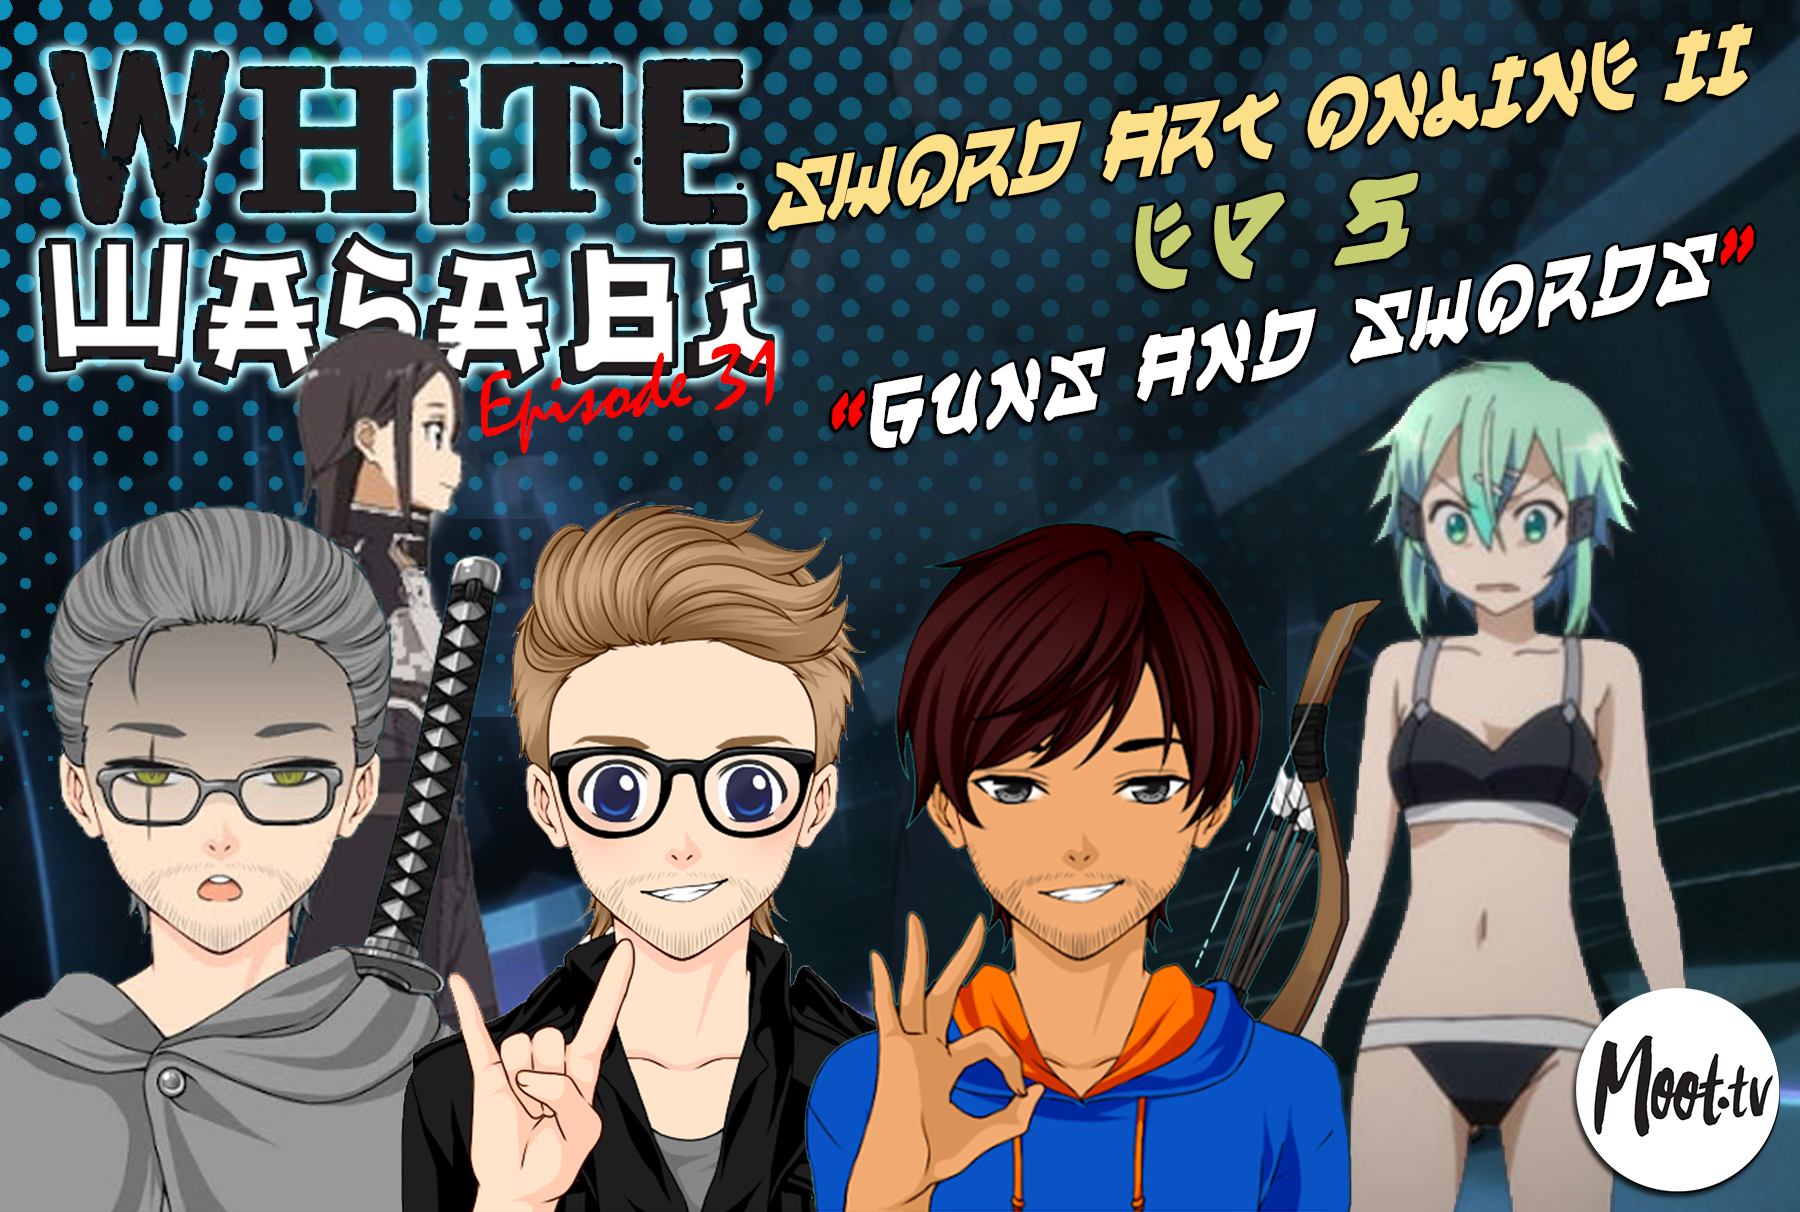 "White Wasabi Ep31: Sword Art Online 2 Ep 5 ""Guns and Swords"""